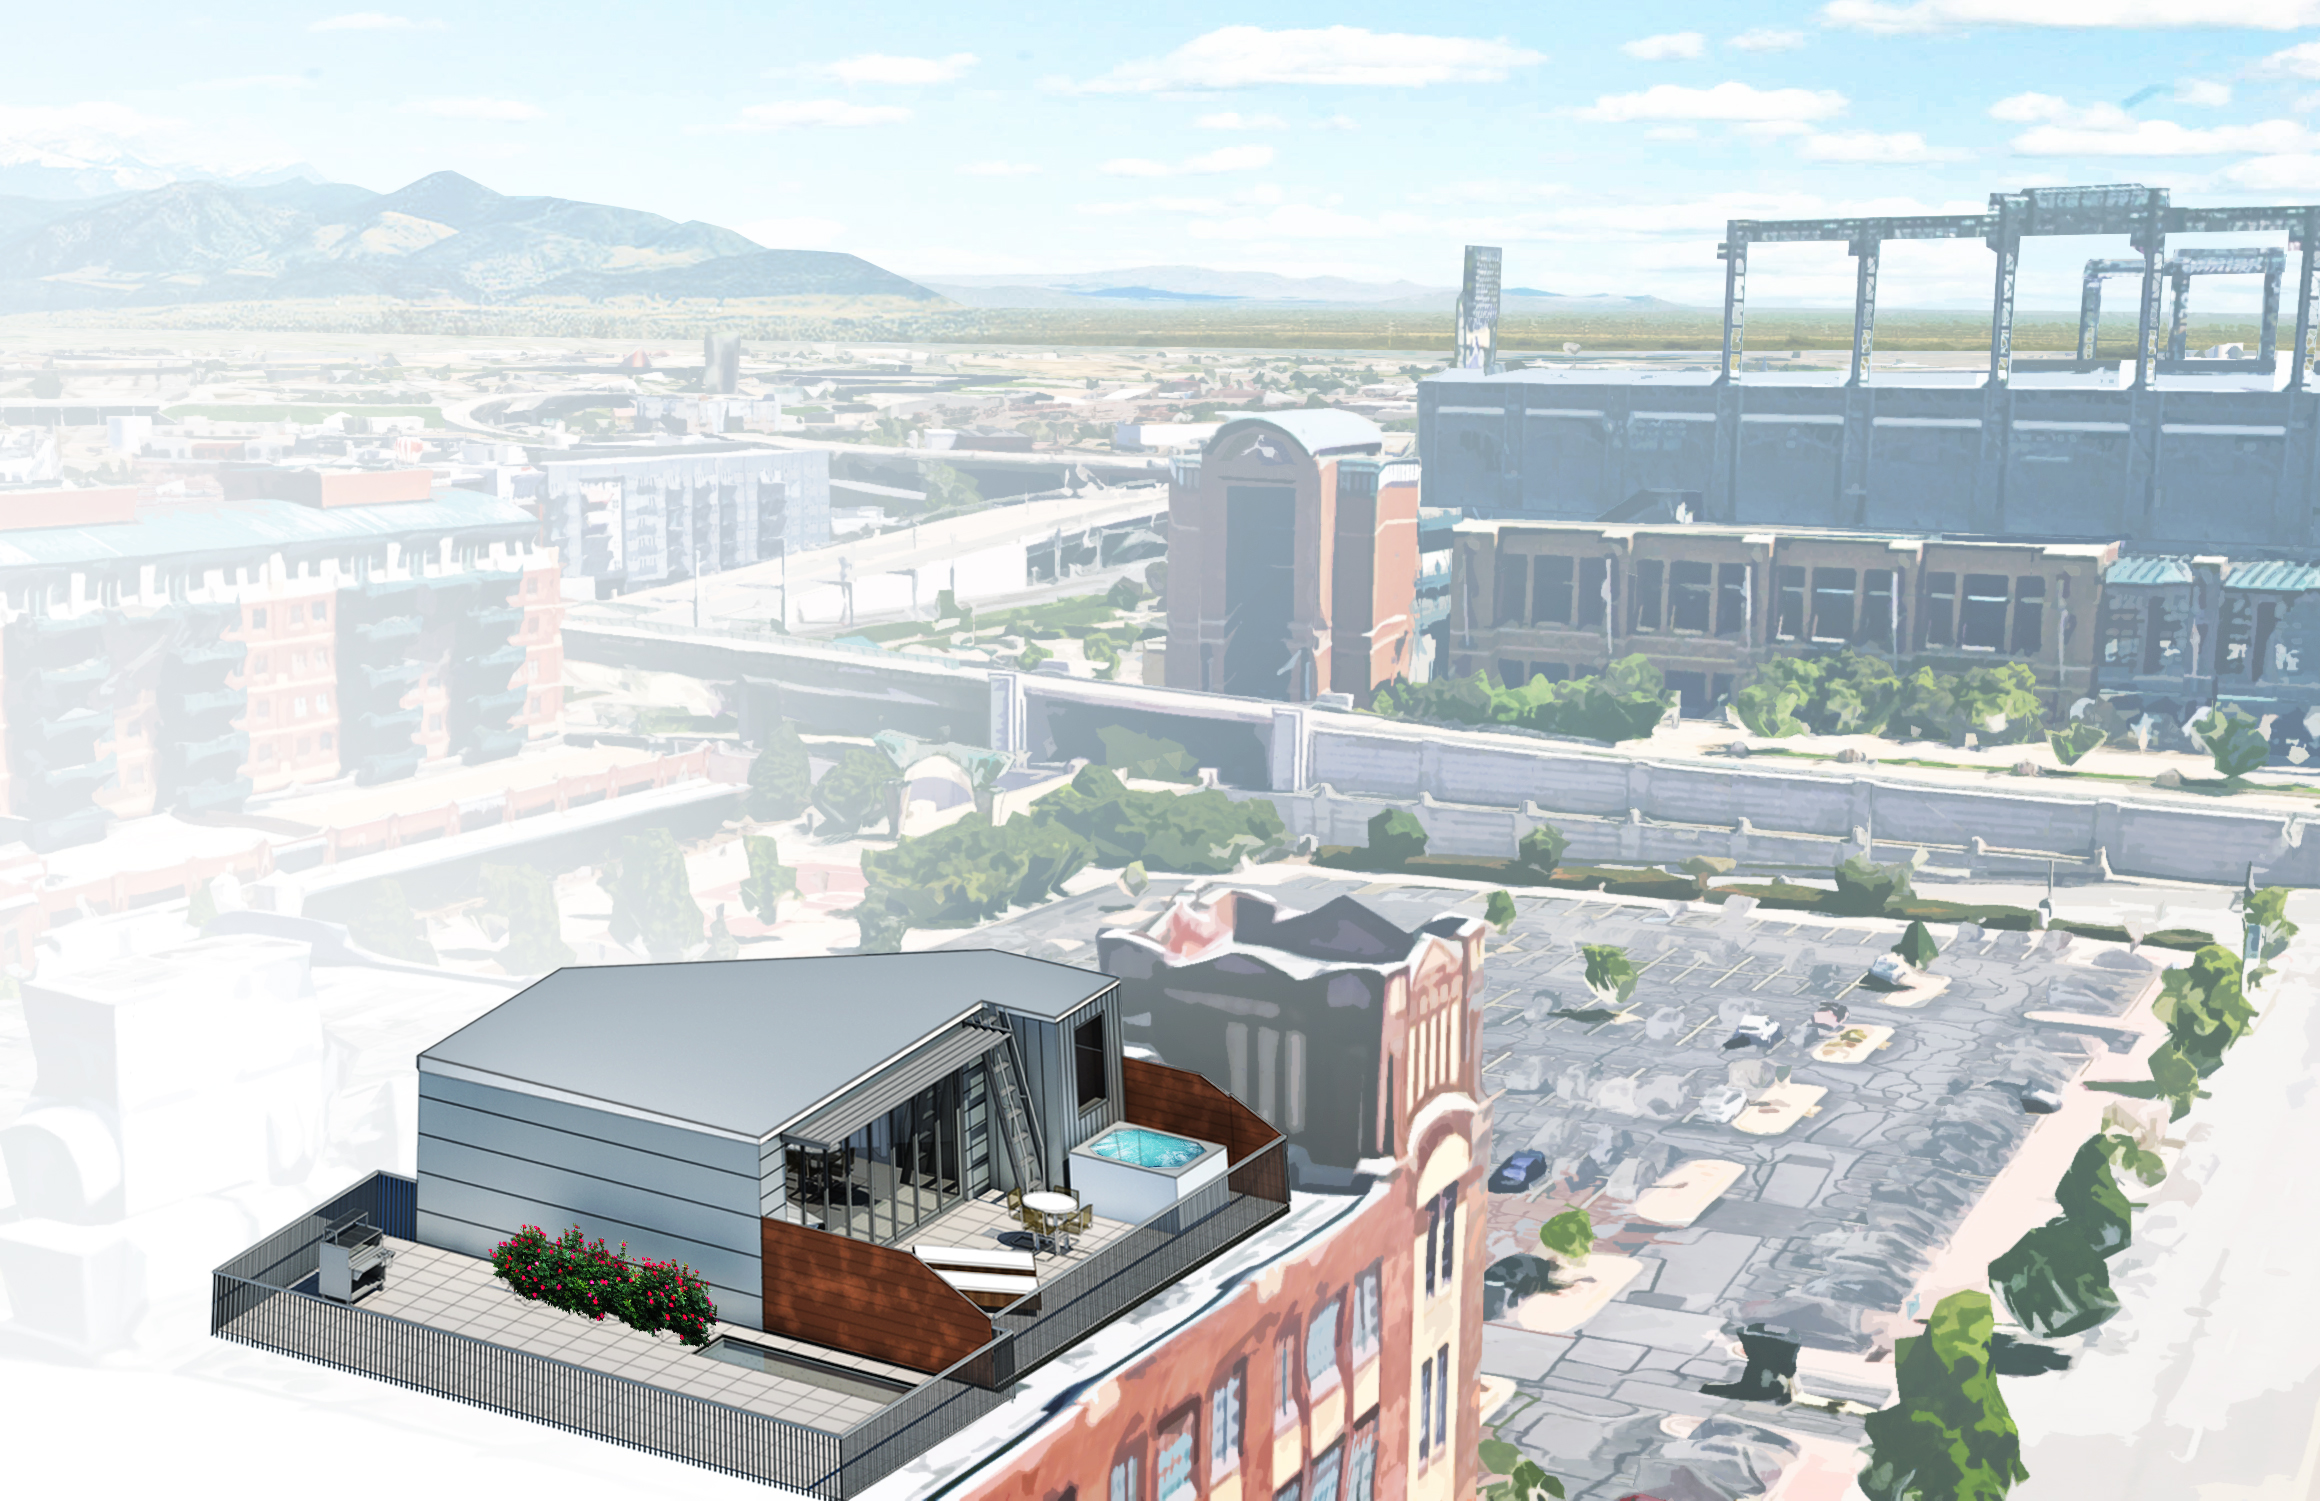 6A Penthouse_perspective2.jpg